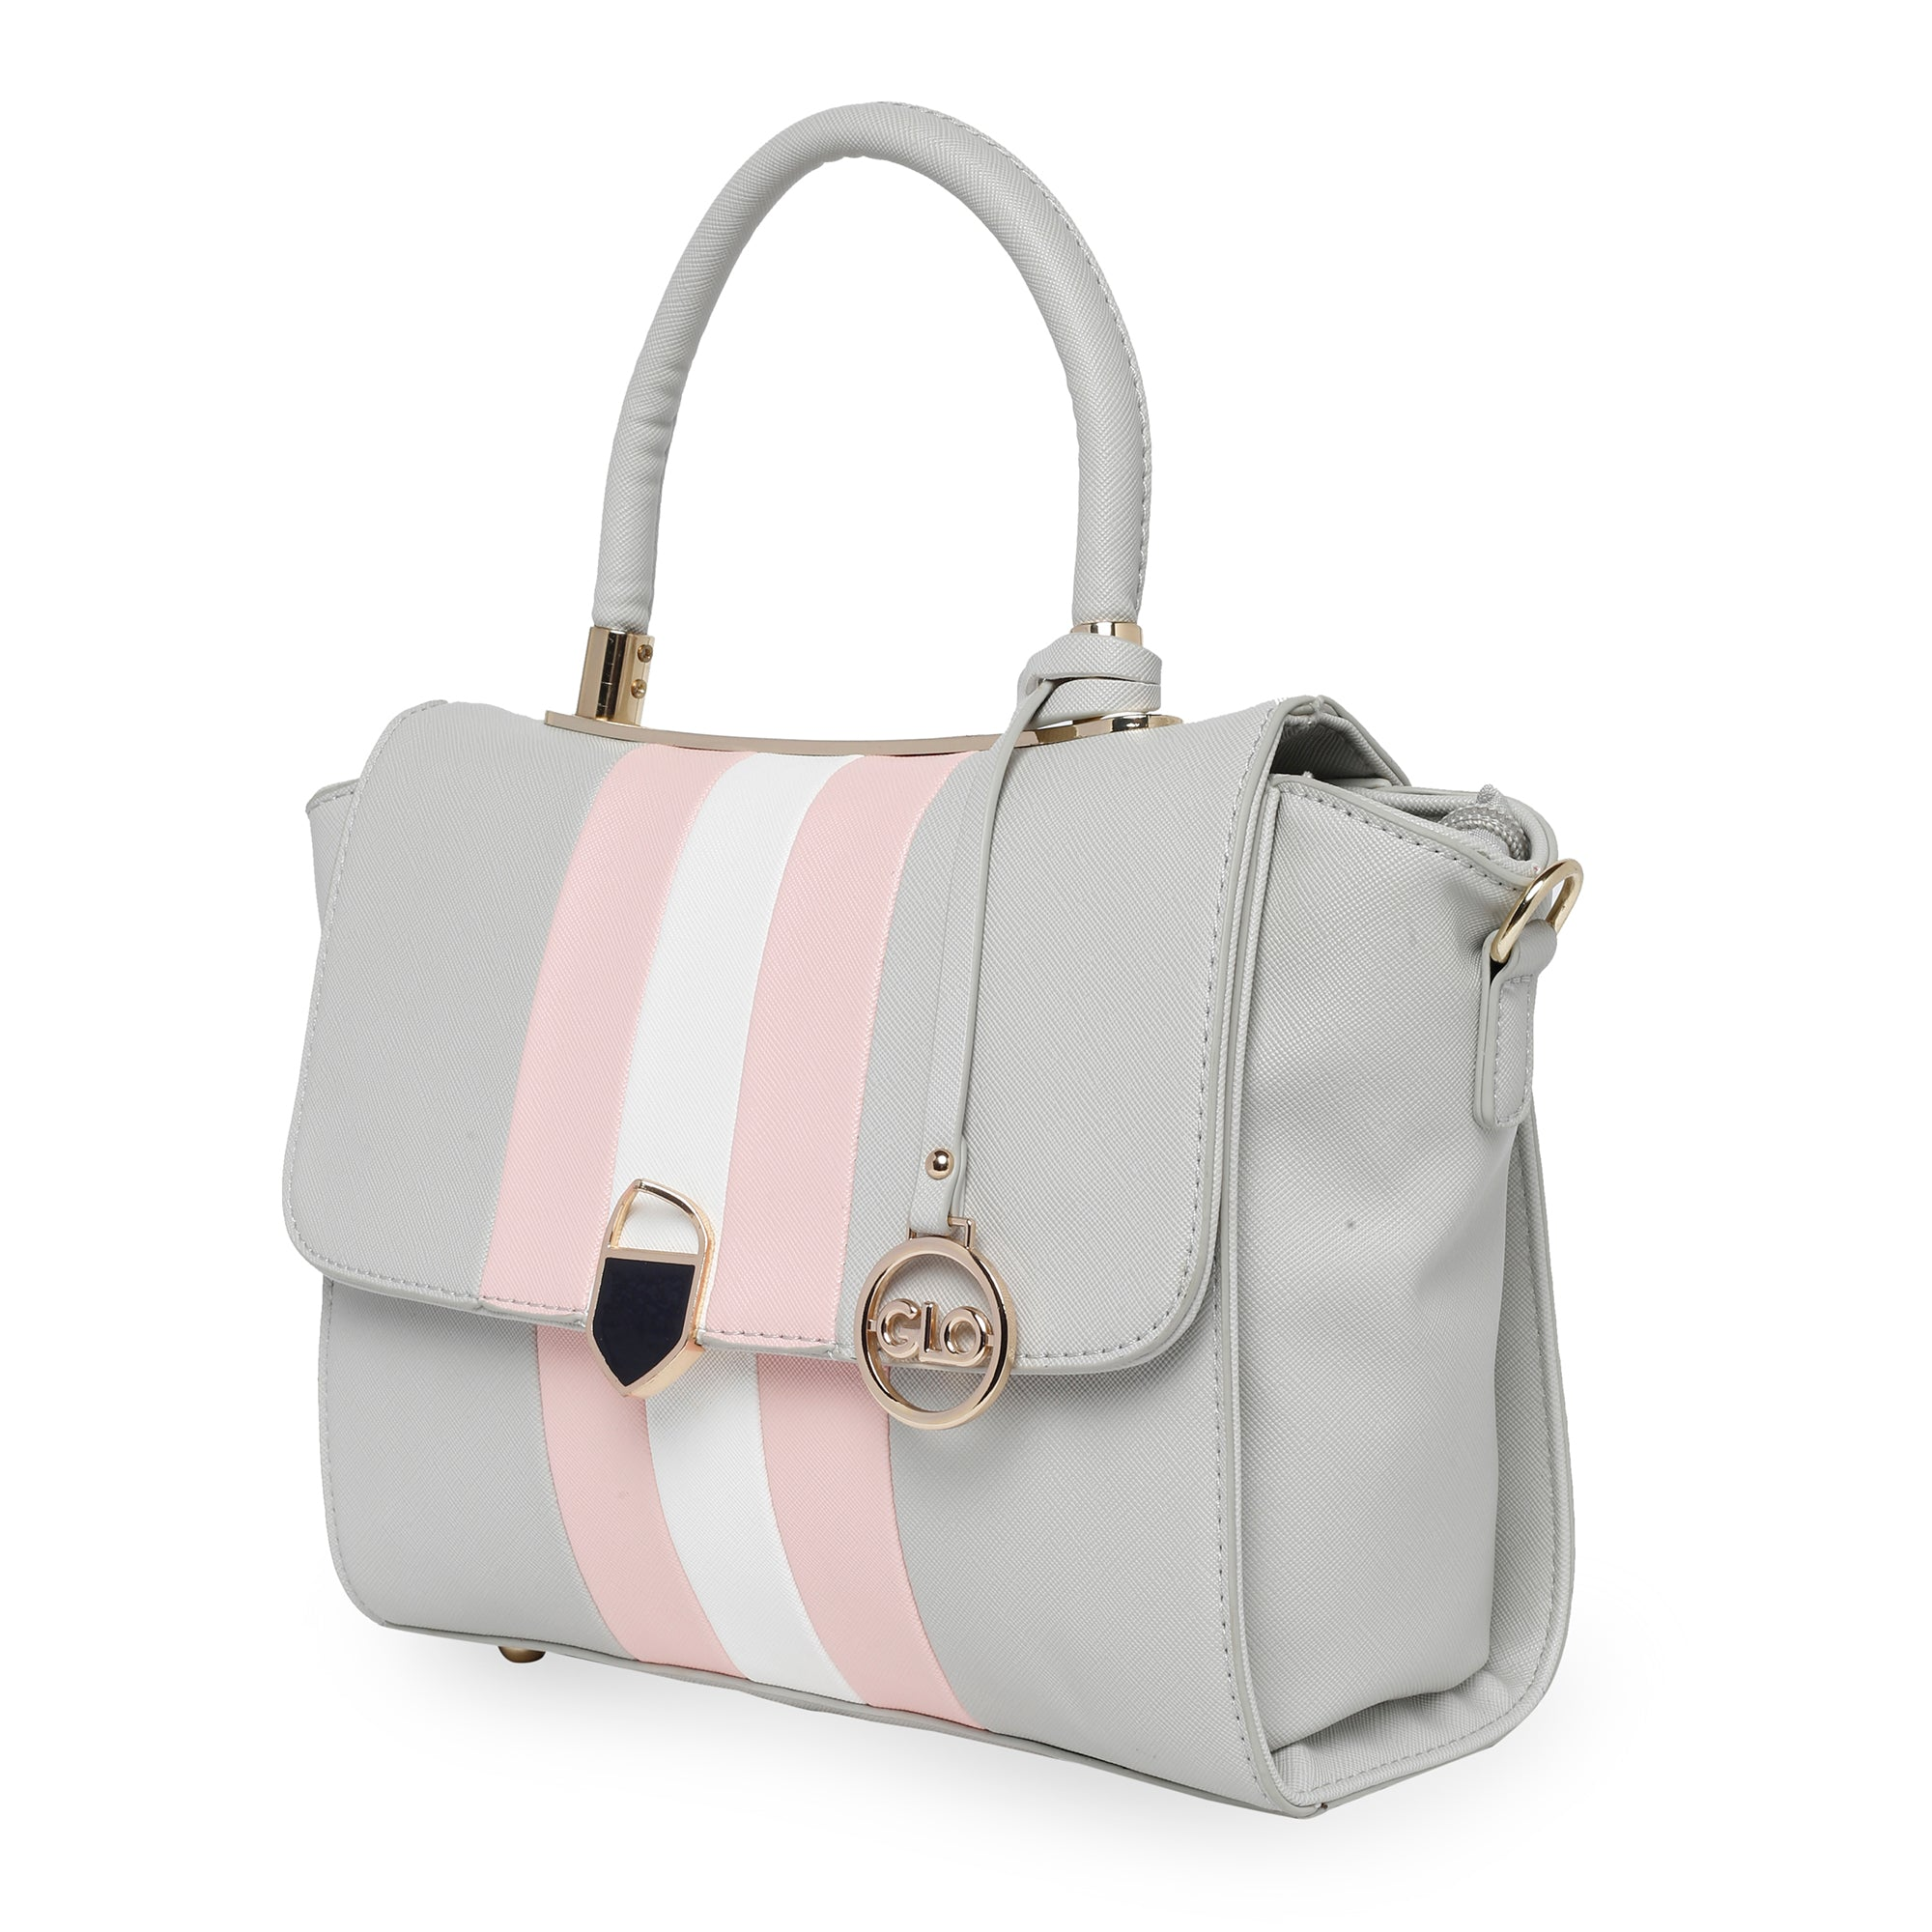 Globus Grey Nude & White Hand Bag-3